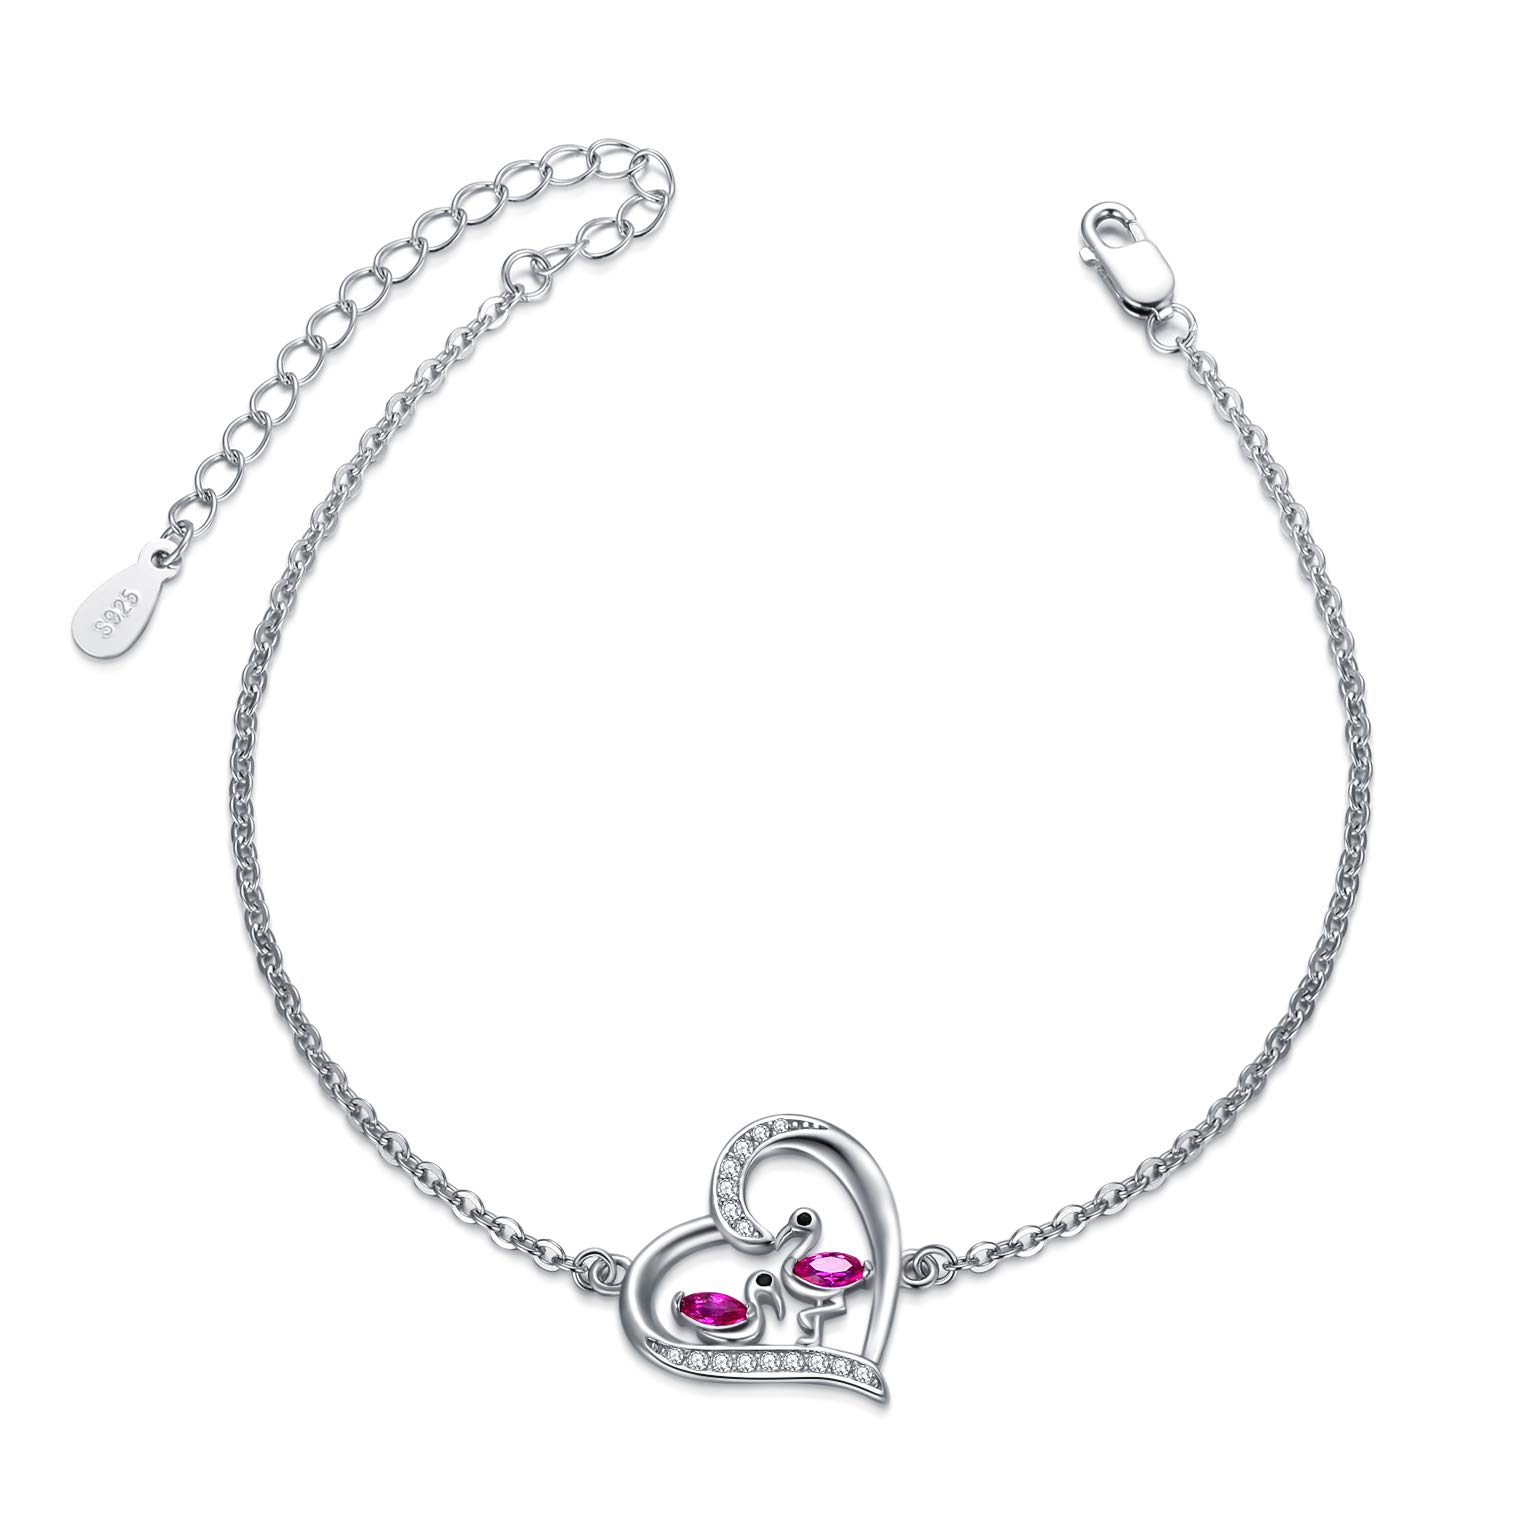 New Triple Silver Chain Bracelet with Flamingo and Heart Charm Detail